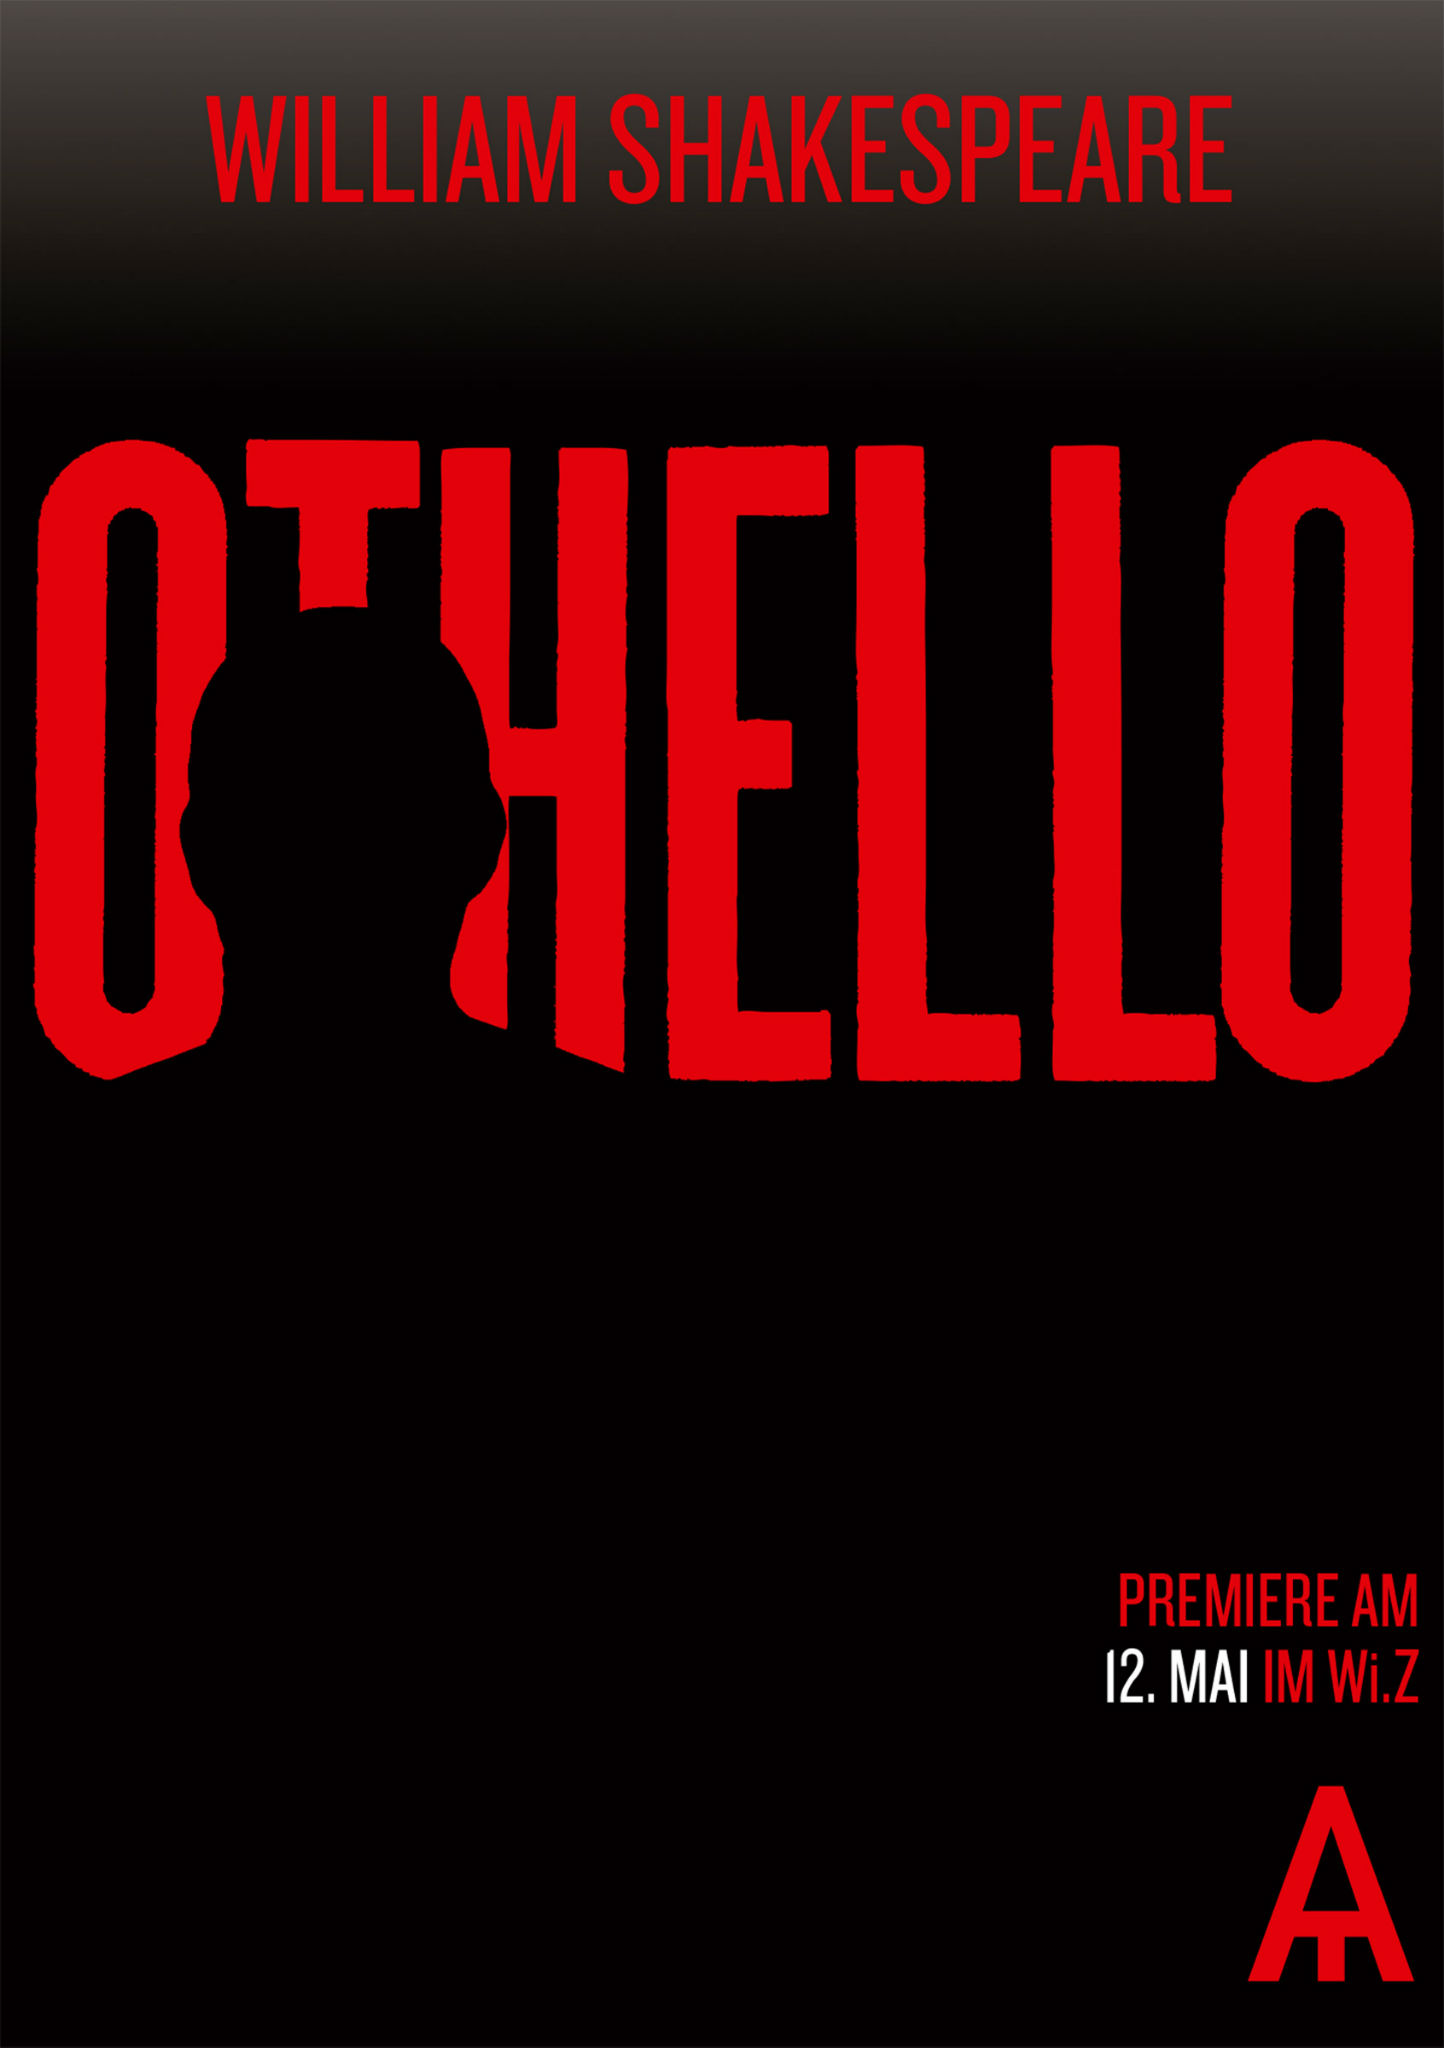 Kleon Medugorac Othello